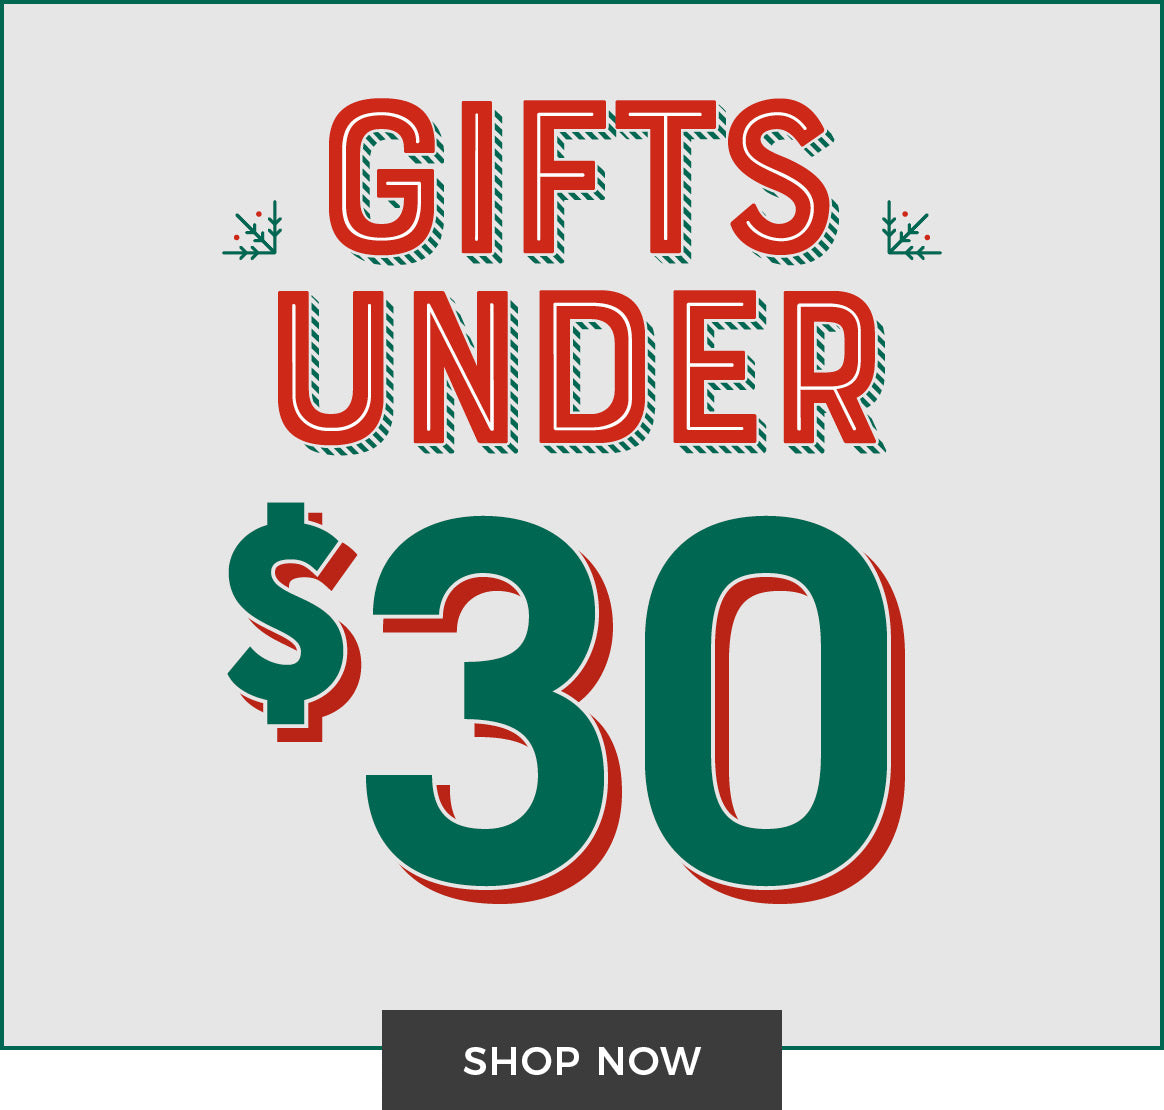 Urban Planet | Holiday Shop - Shop Gifts Under $30